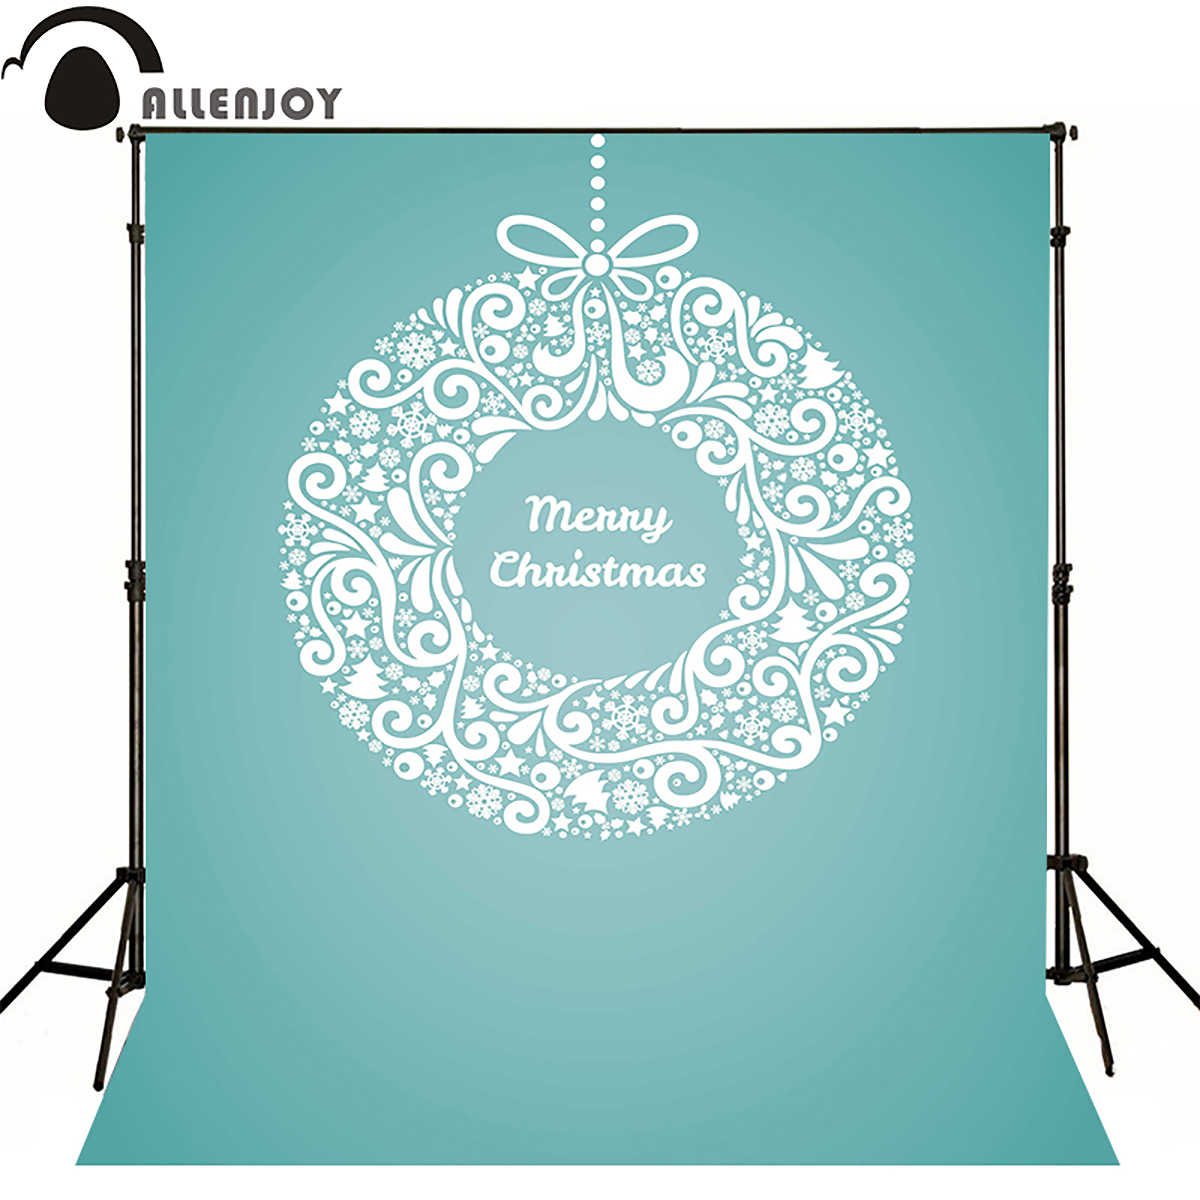 Allen joy christmas photography backdrops floral ball bauble gifts green tree newborn baby shower Discount sale happy cute